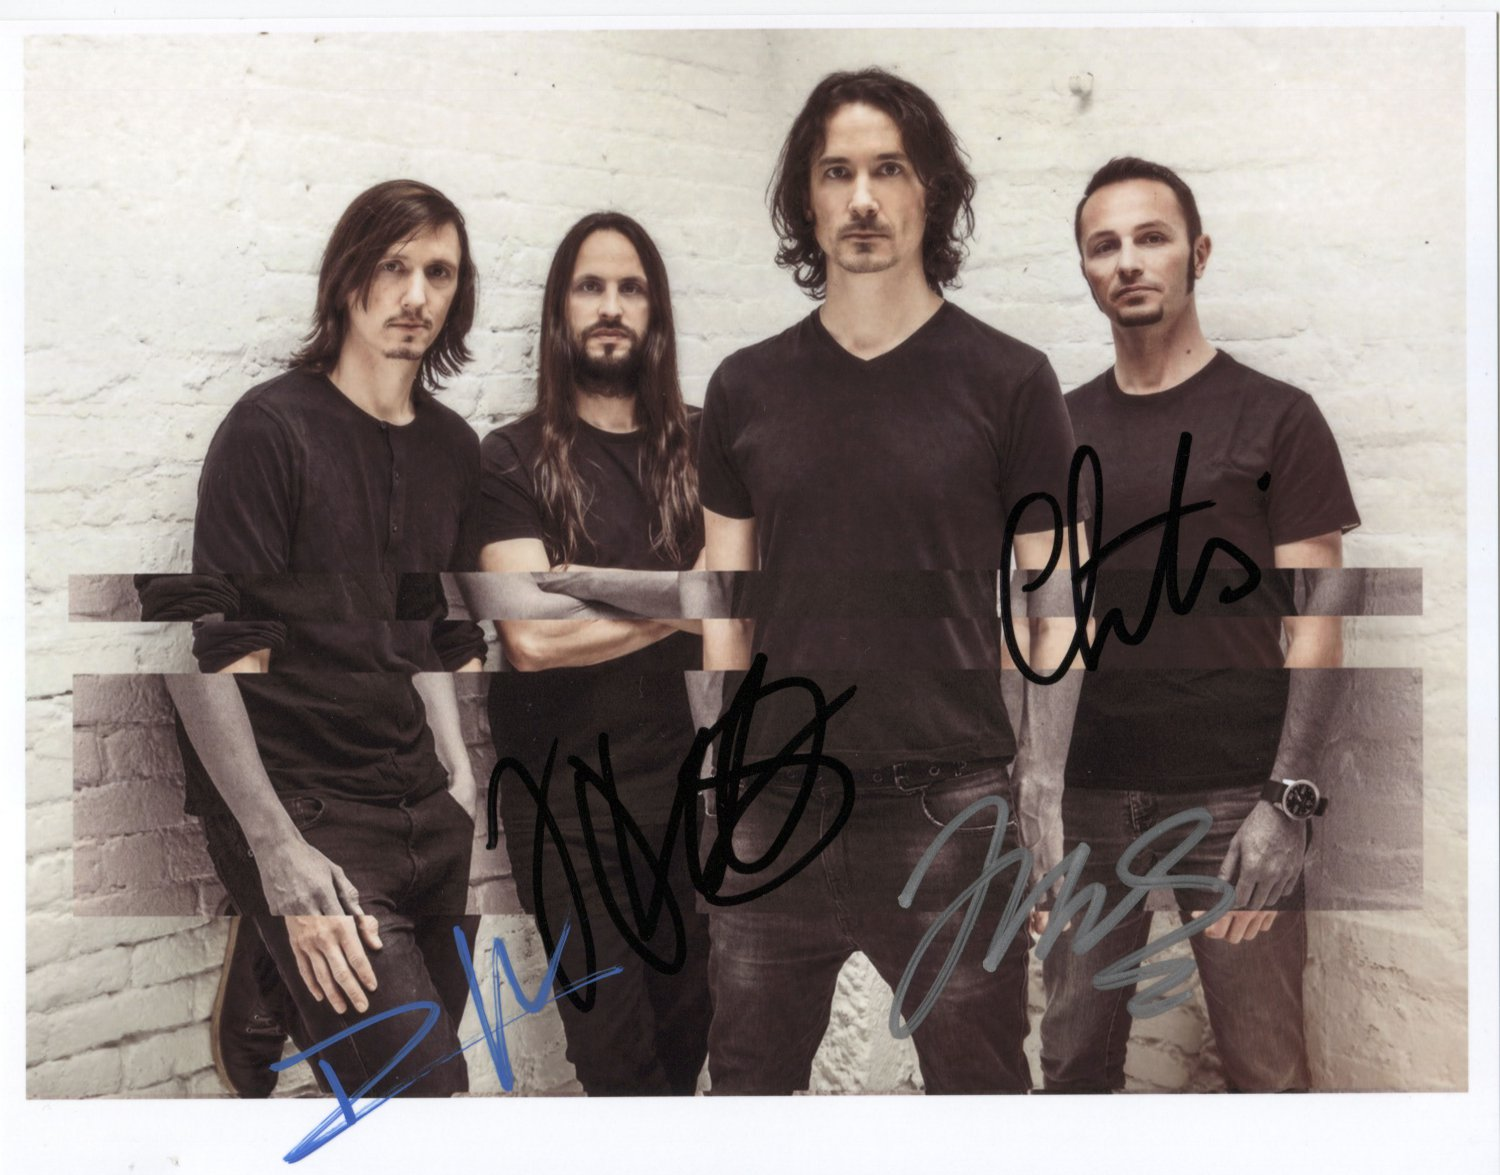 """Gojira (Band) FULLY SIGNED 8"""" x 10"""" Photo + Certificate Of Authentication 100% Genuine"""